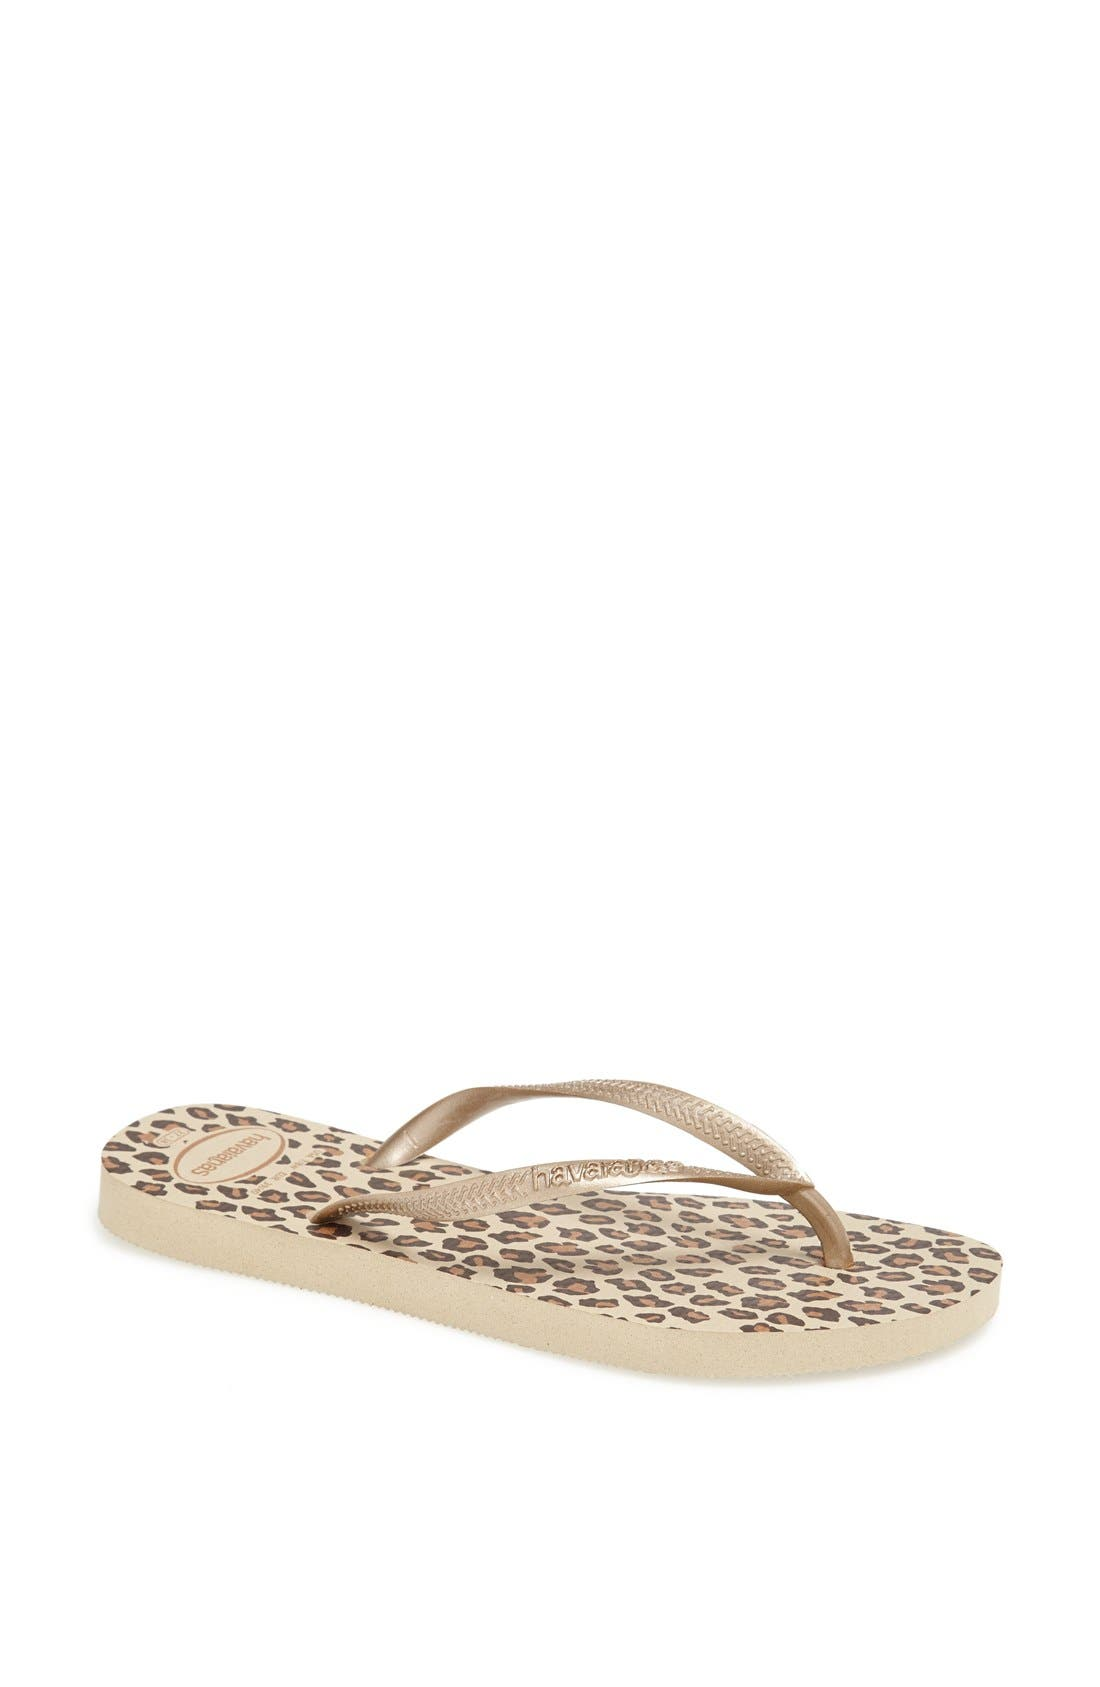 Alternate Image 1 Selected - Havaianas 'Slim Animal Print' Flip Flop (Women)